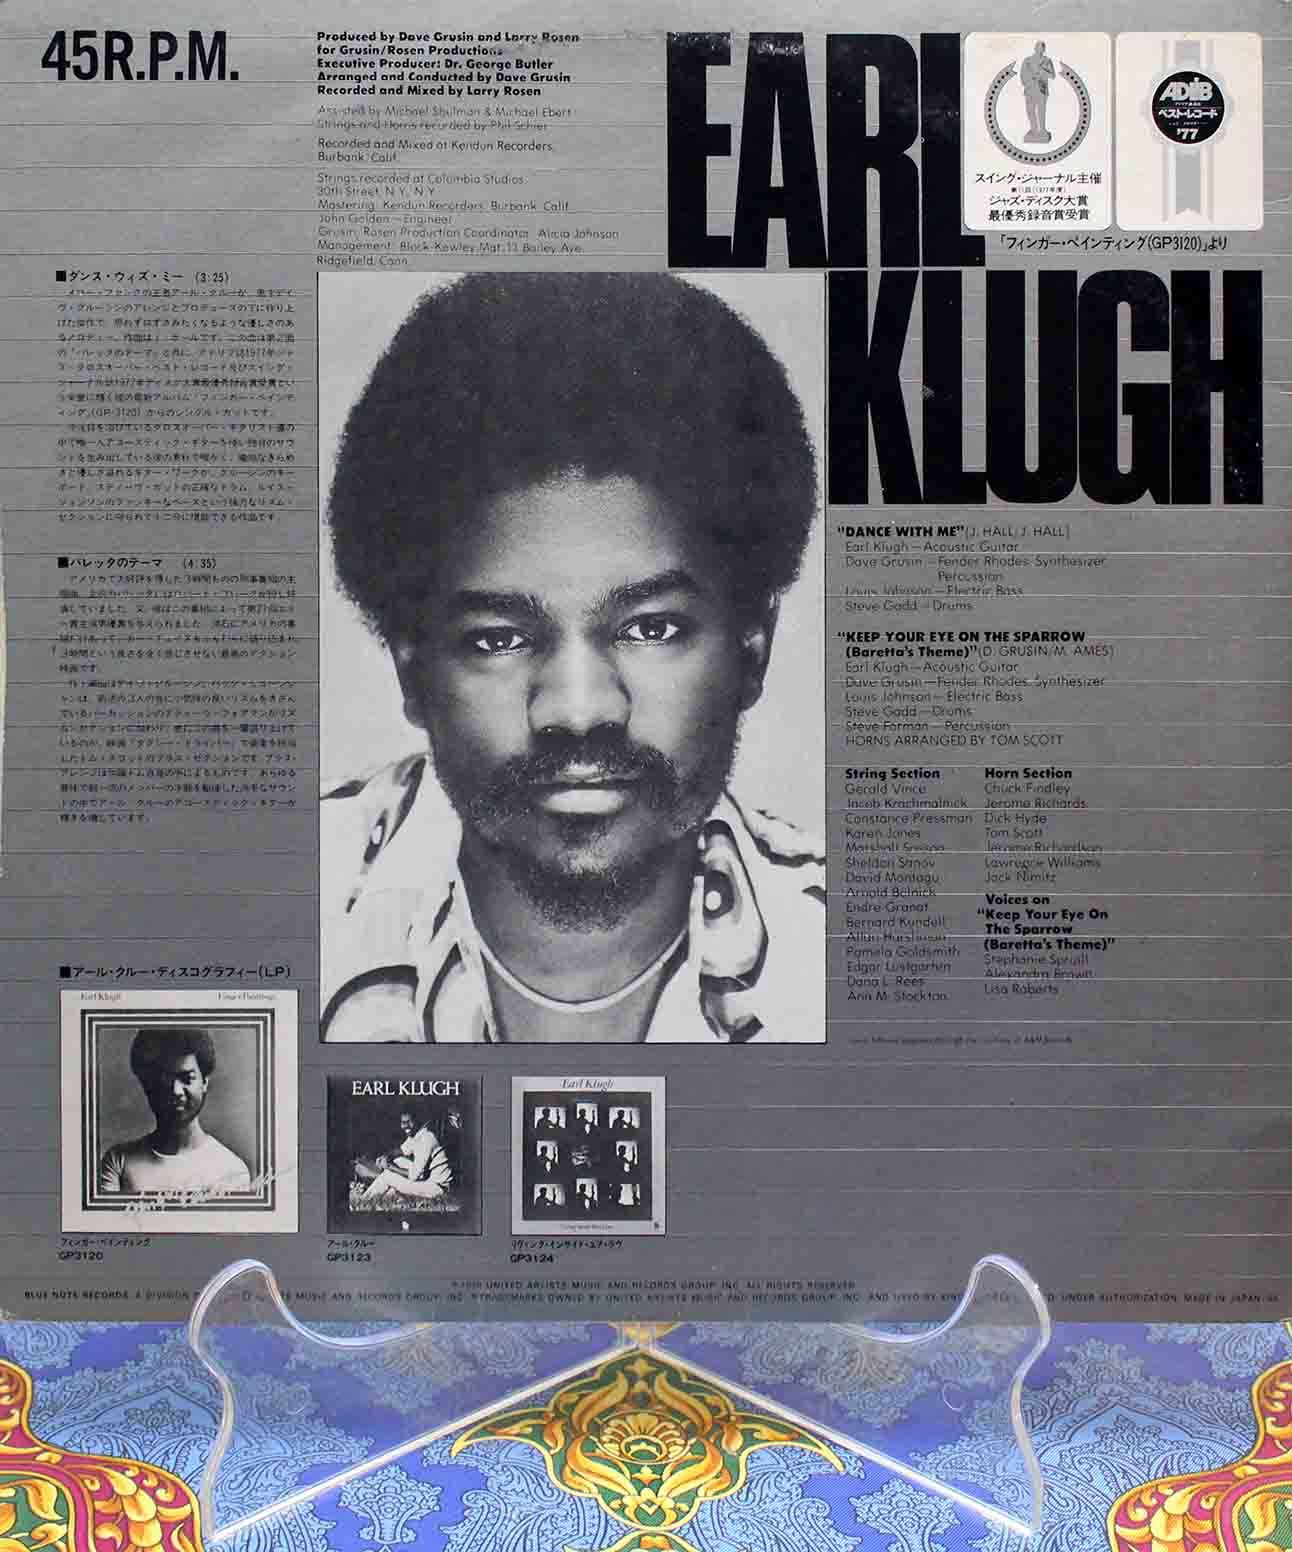 Earl Klugh - Keep Your Eyes On The Sparrow 02